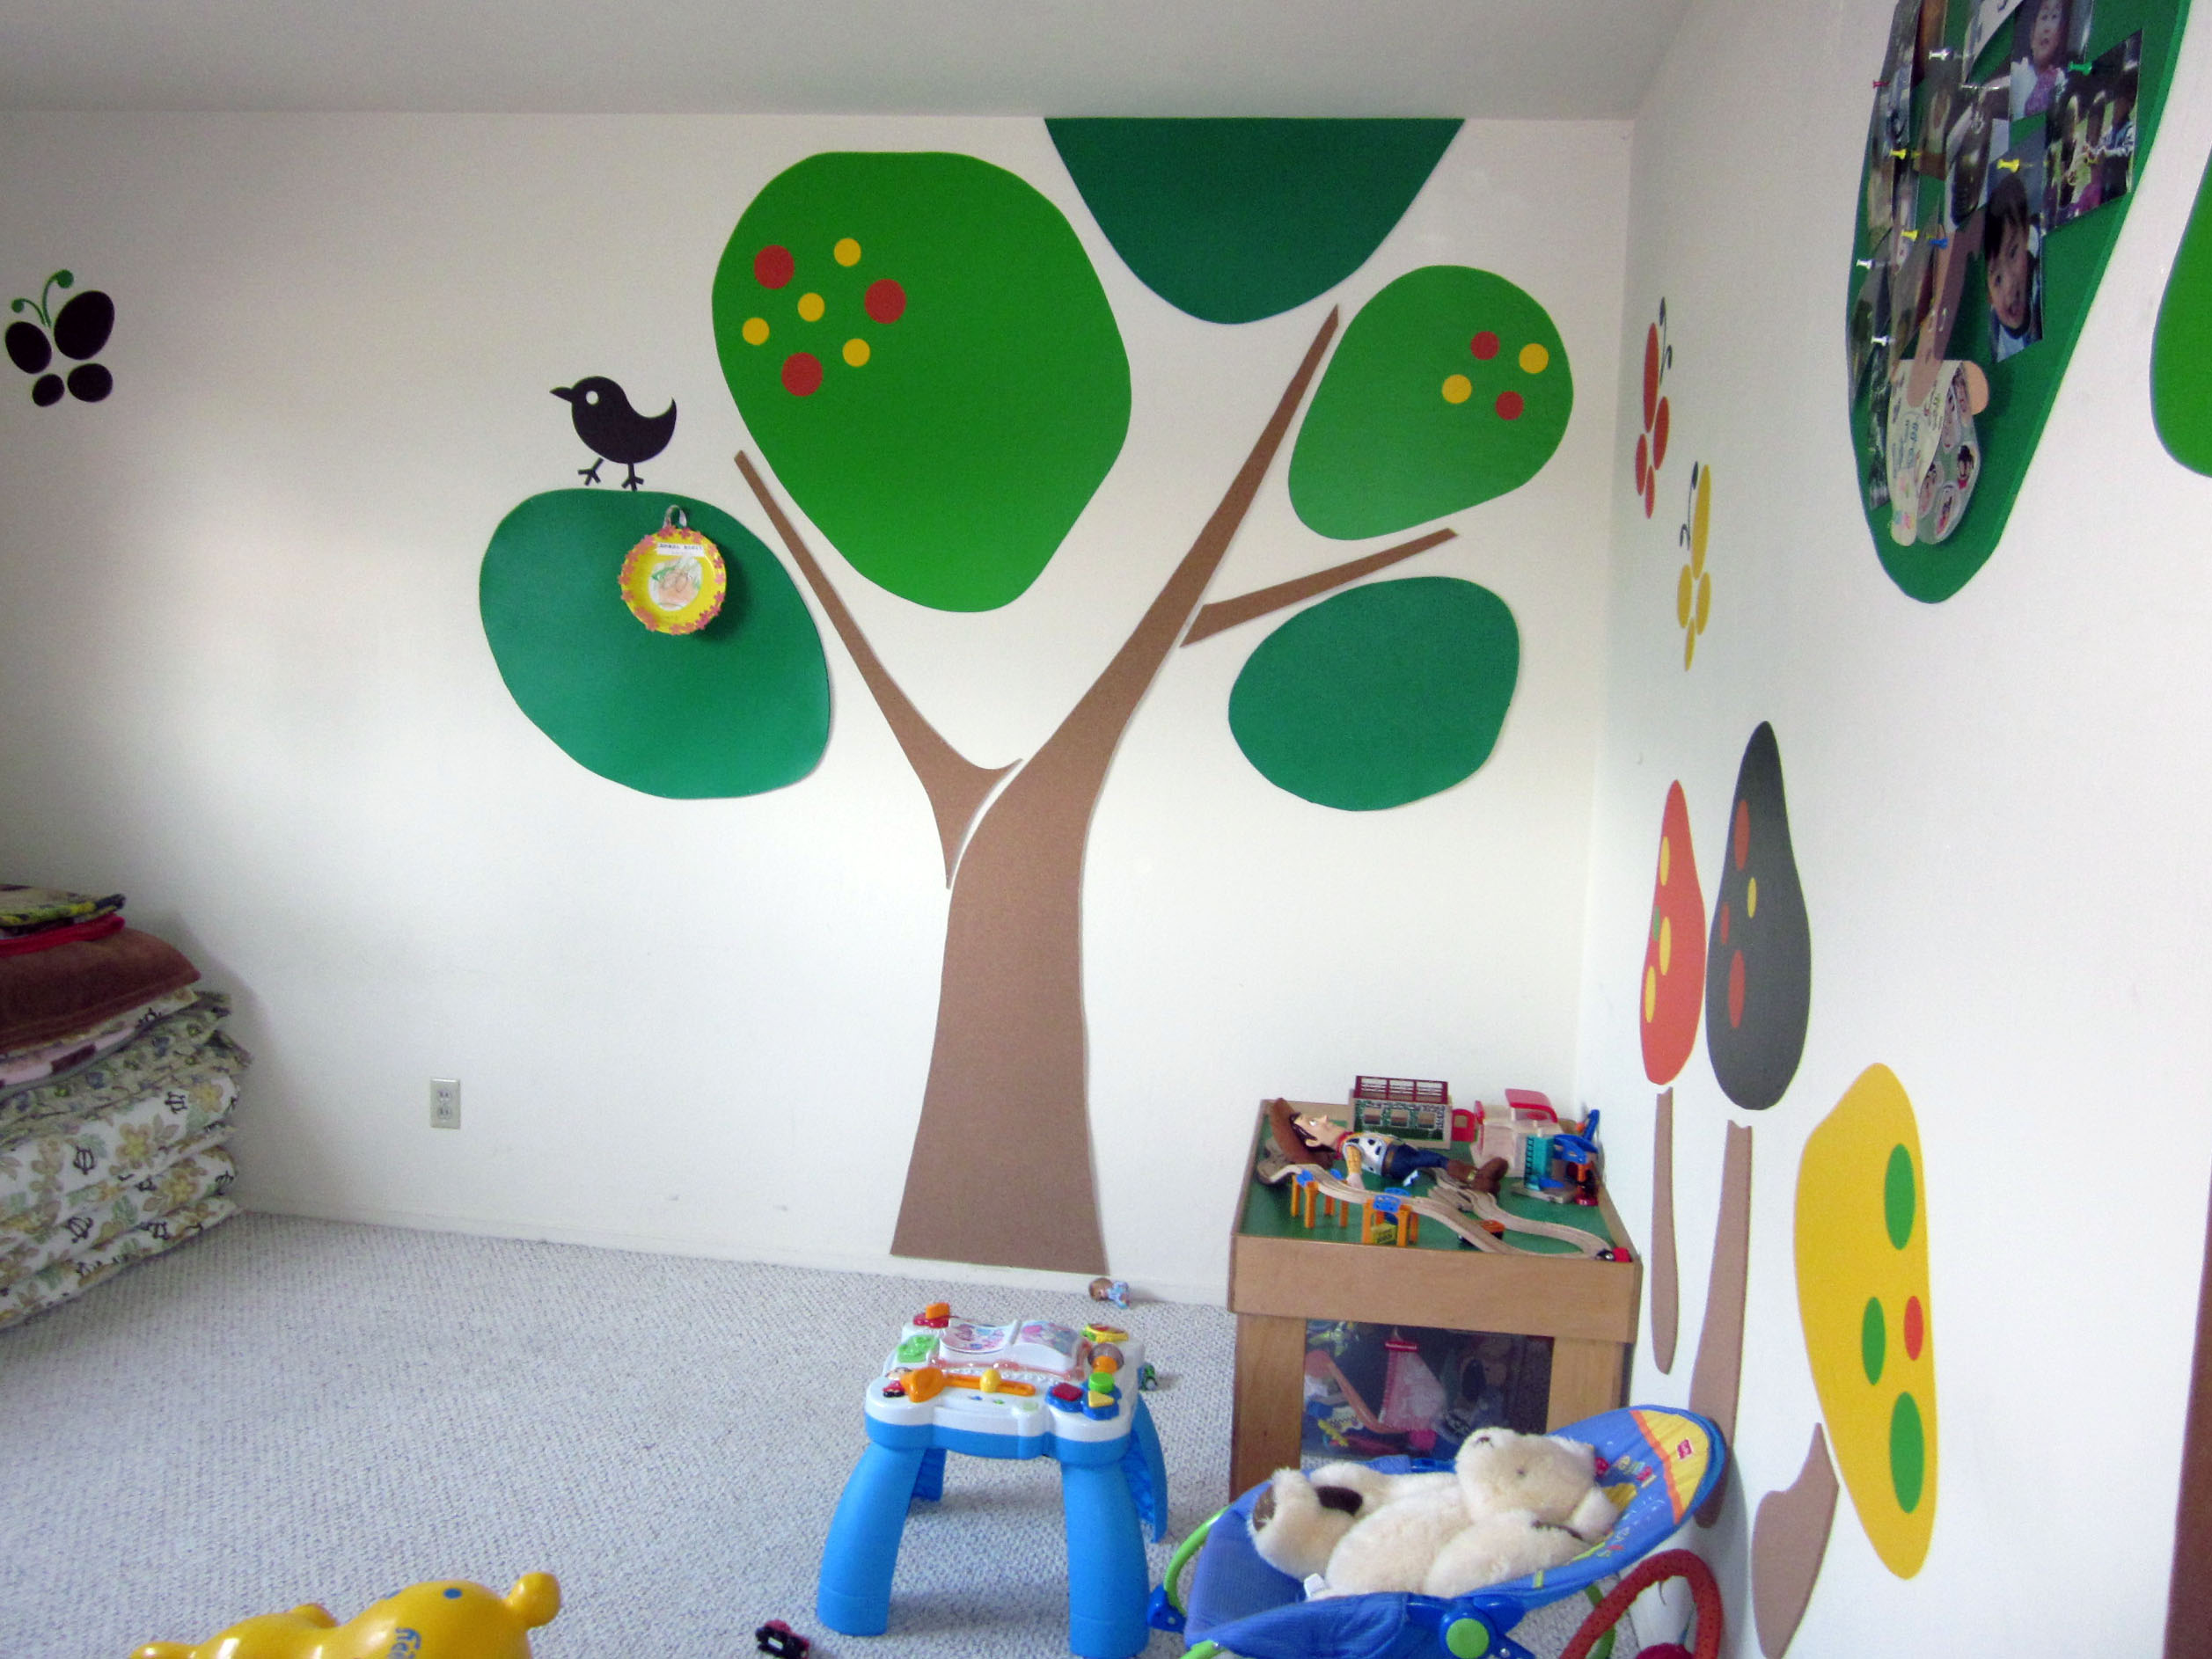 25 Vivacious Kids Rooms With Brick Walls Full Of Personality: Kid Room Wall Decoration